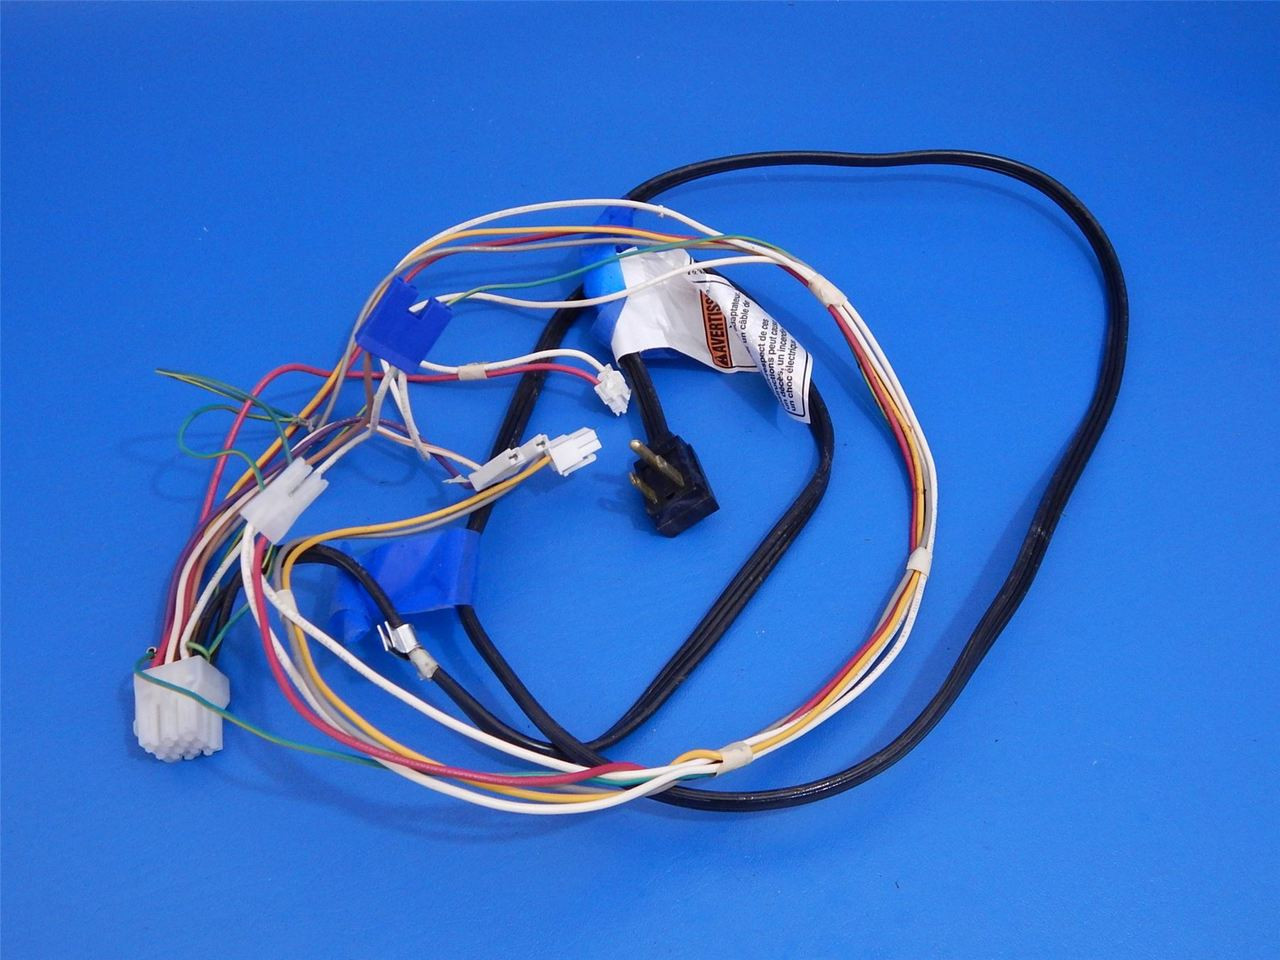 medium resolution of whirlpool side side refrigerator wrs325fdam02 wall plug wire harness w10417928 ice cold beer appliance parts